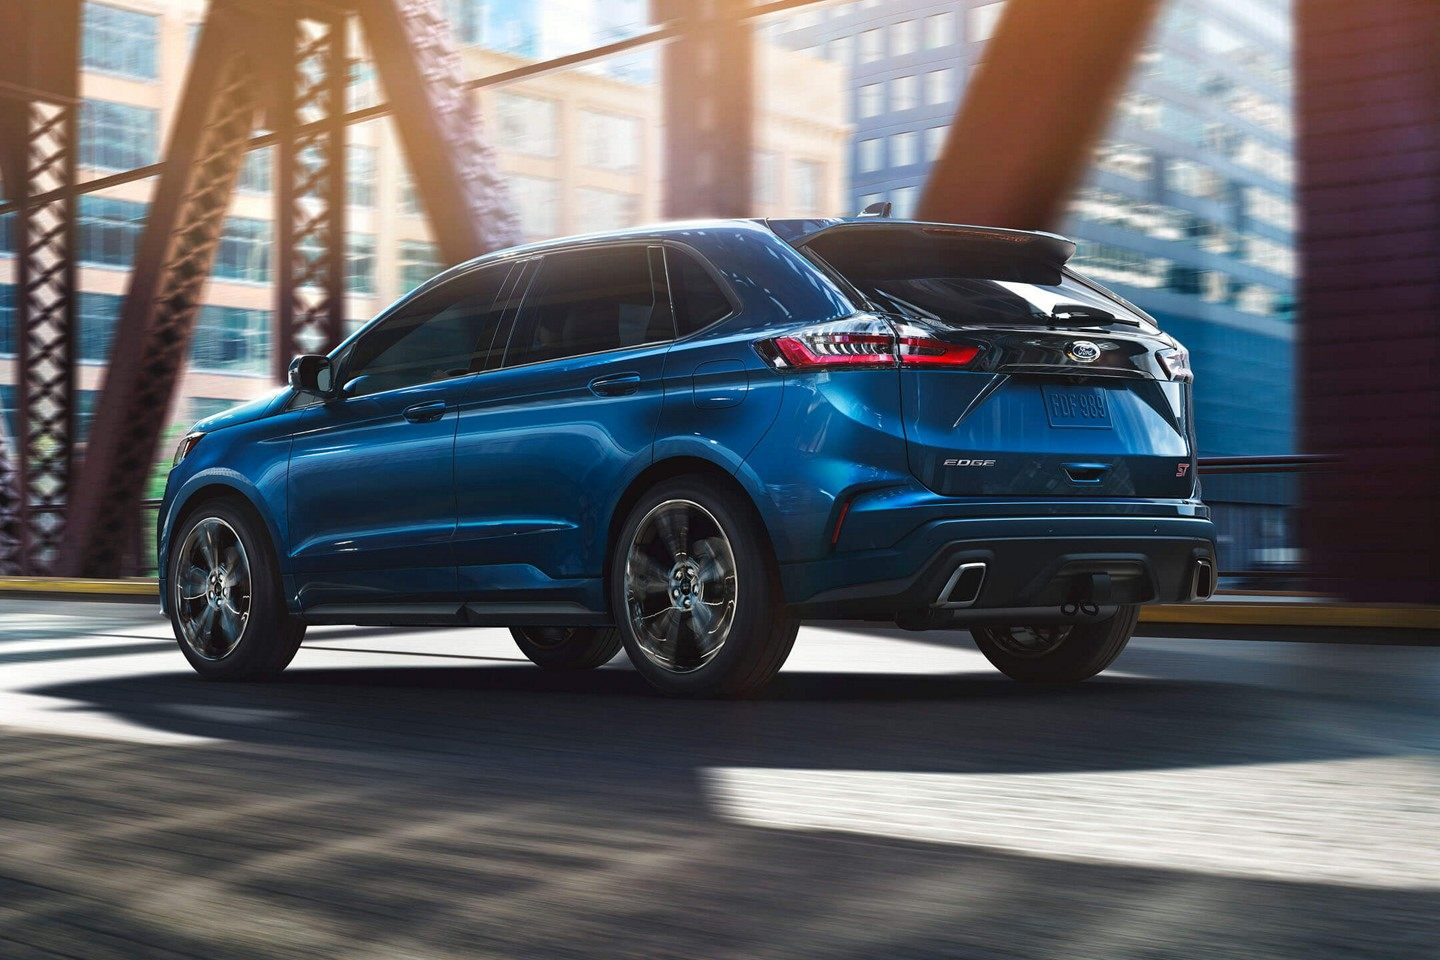 2019 Ford Edge for Sale near Rockwall, TX